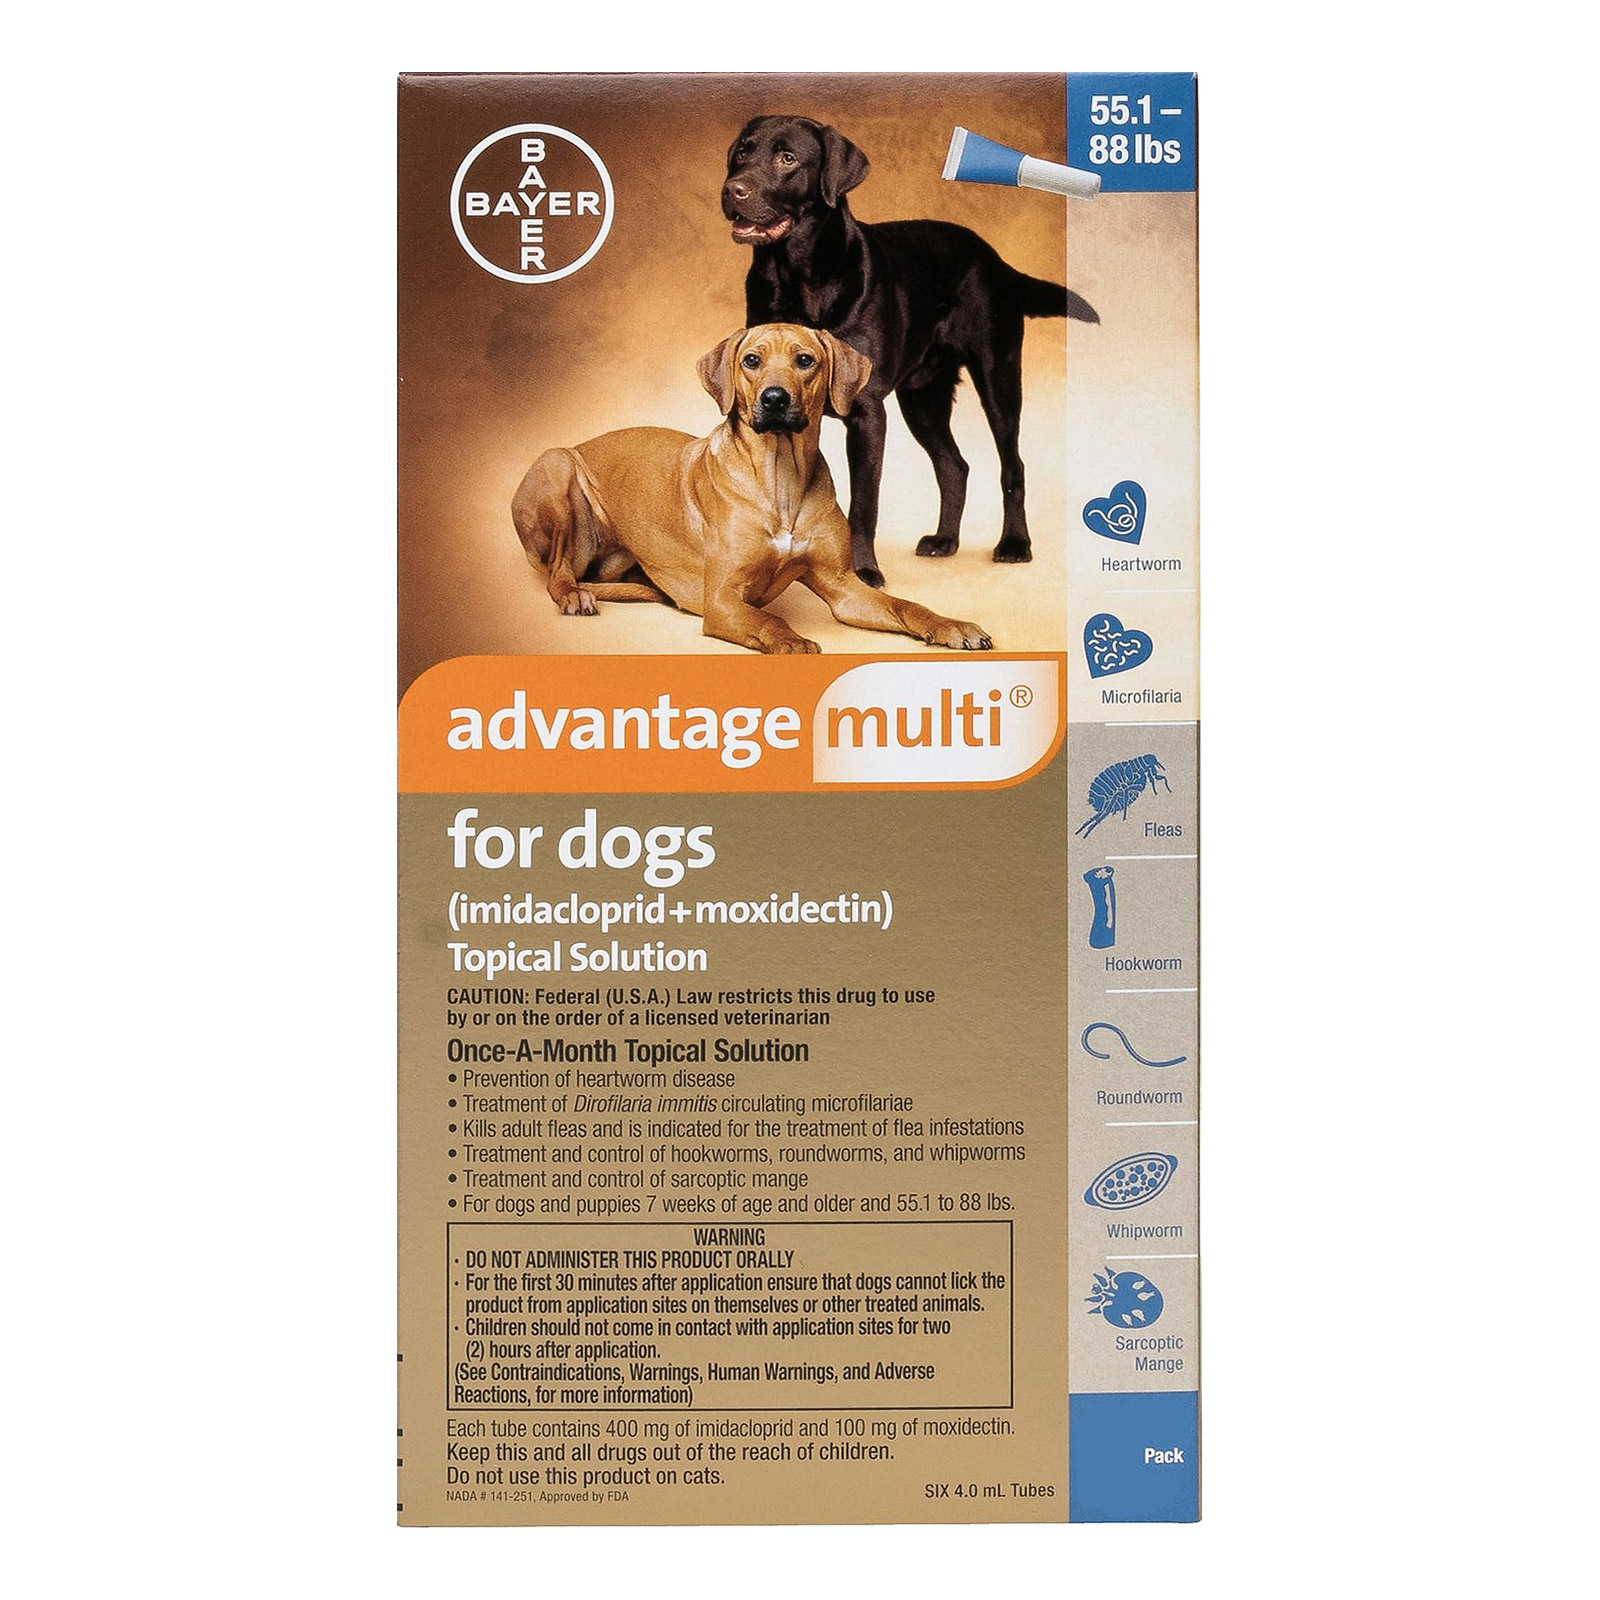 Advantage_Multi_Advocate_Extra_Large_Dogs_55188_Lbs_Blue_6_Doses